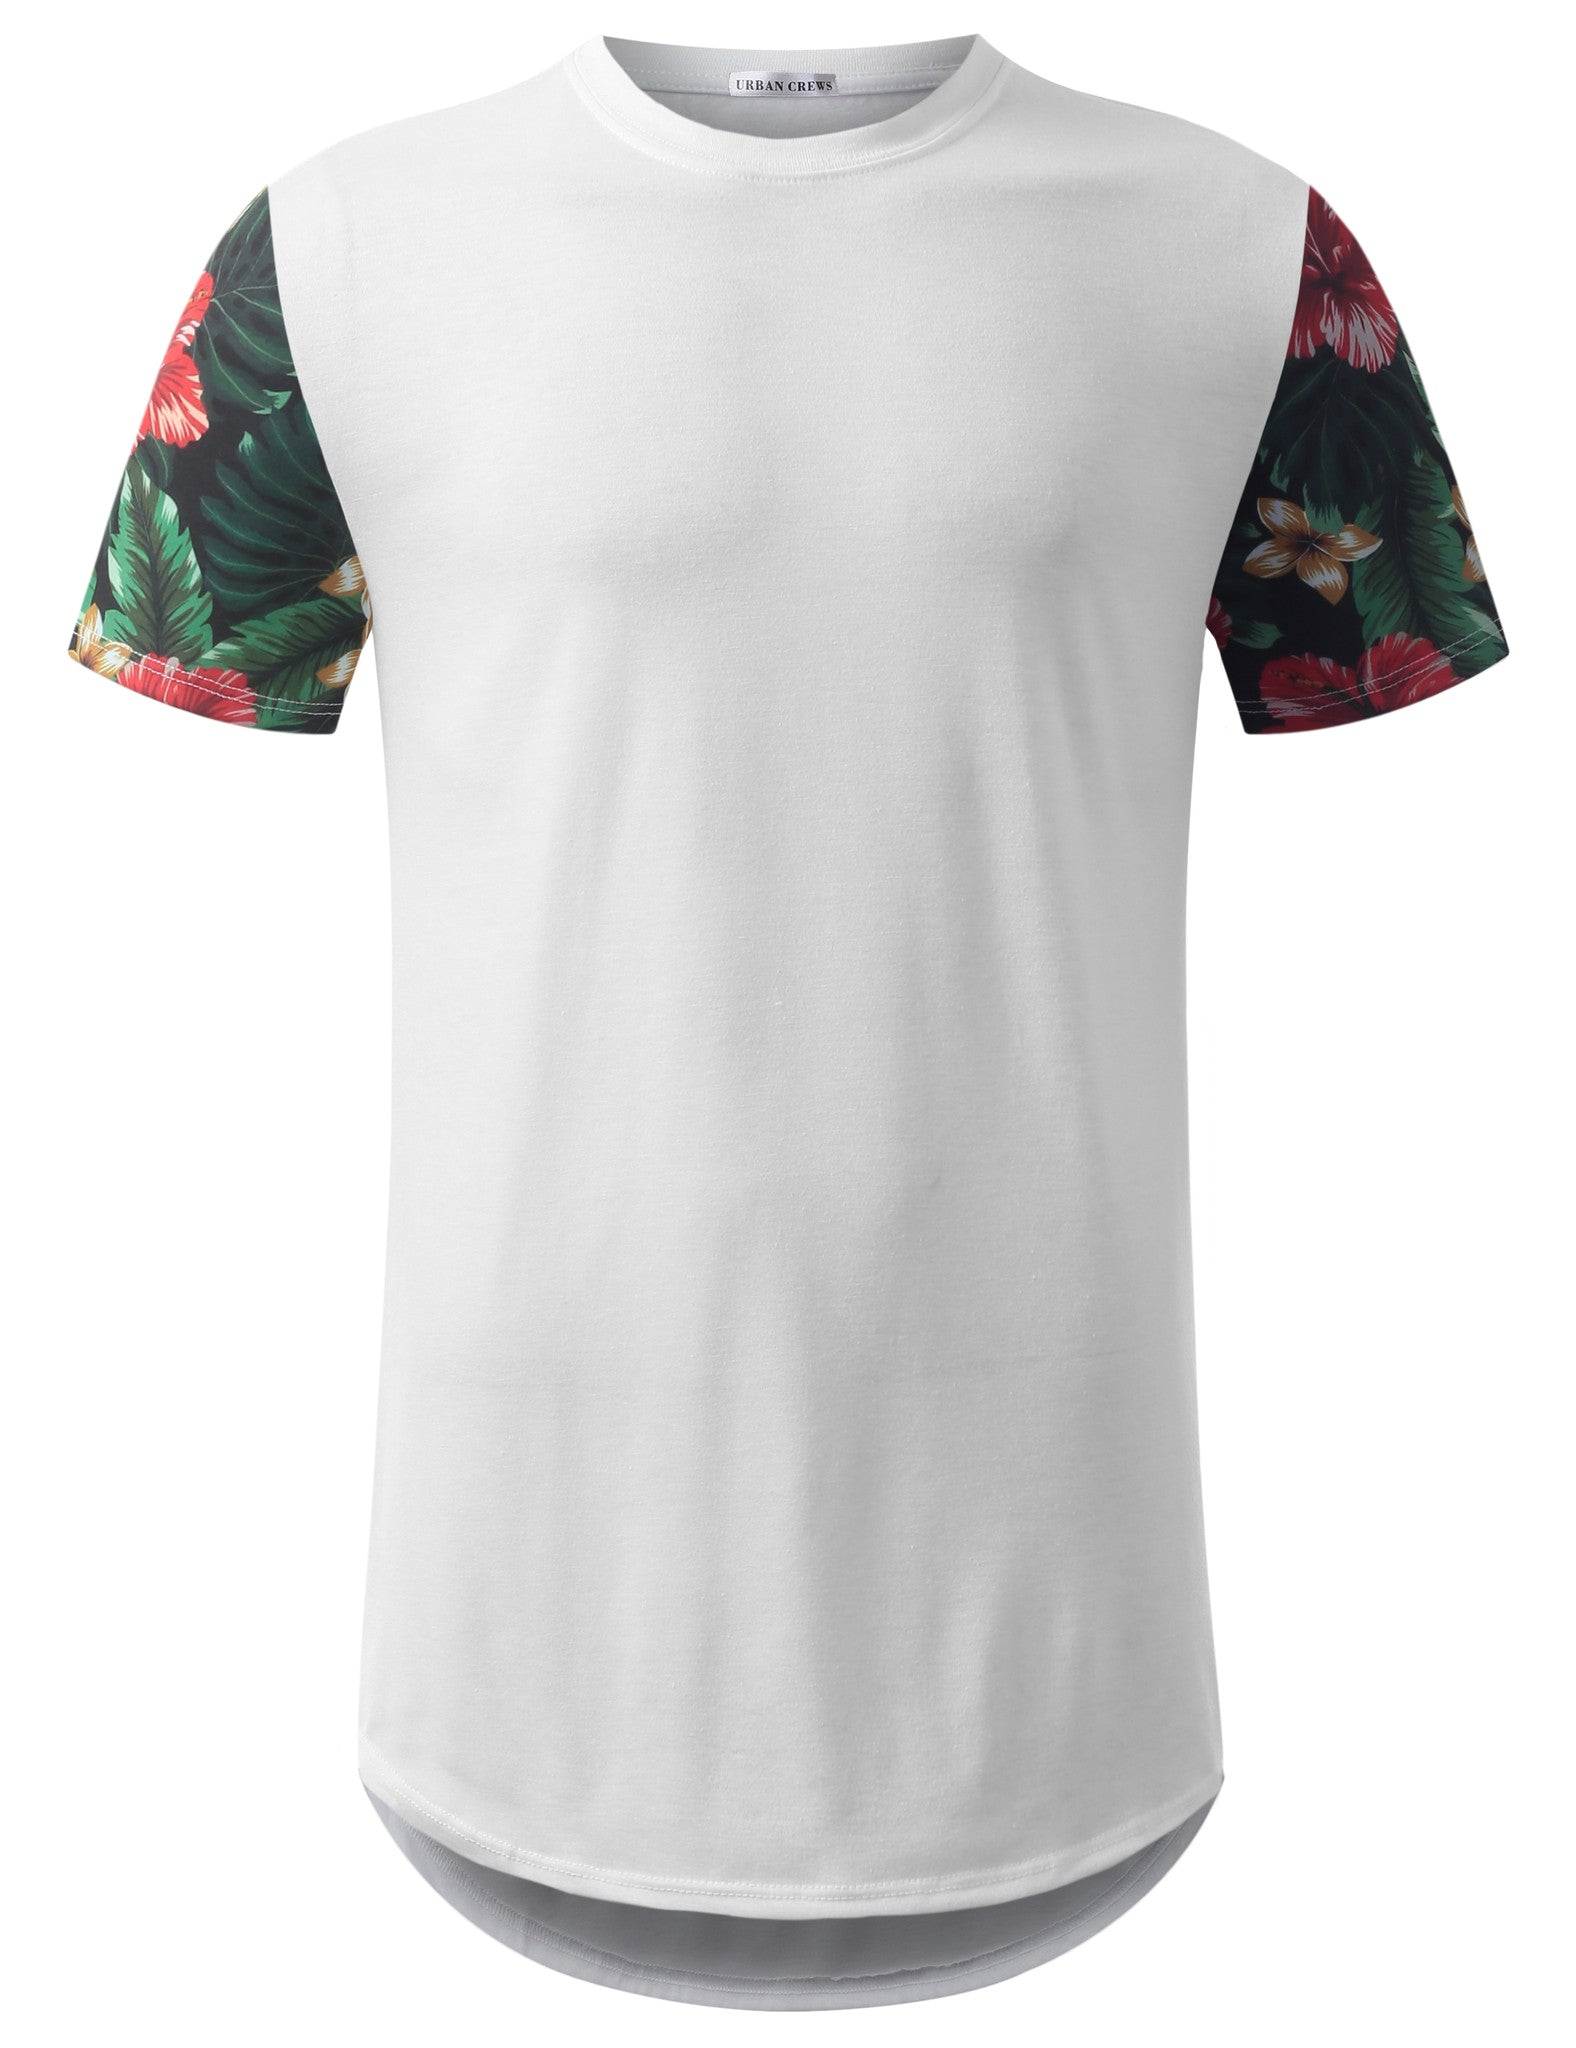 WHITE Red Sleeve Floral Longline Crewneck Tshirt- URBANCREWS